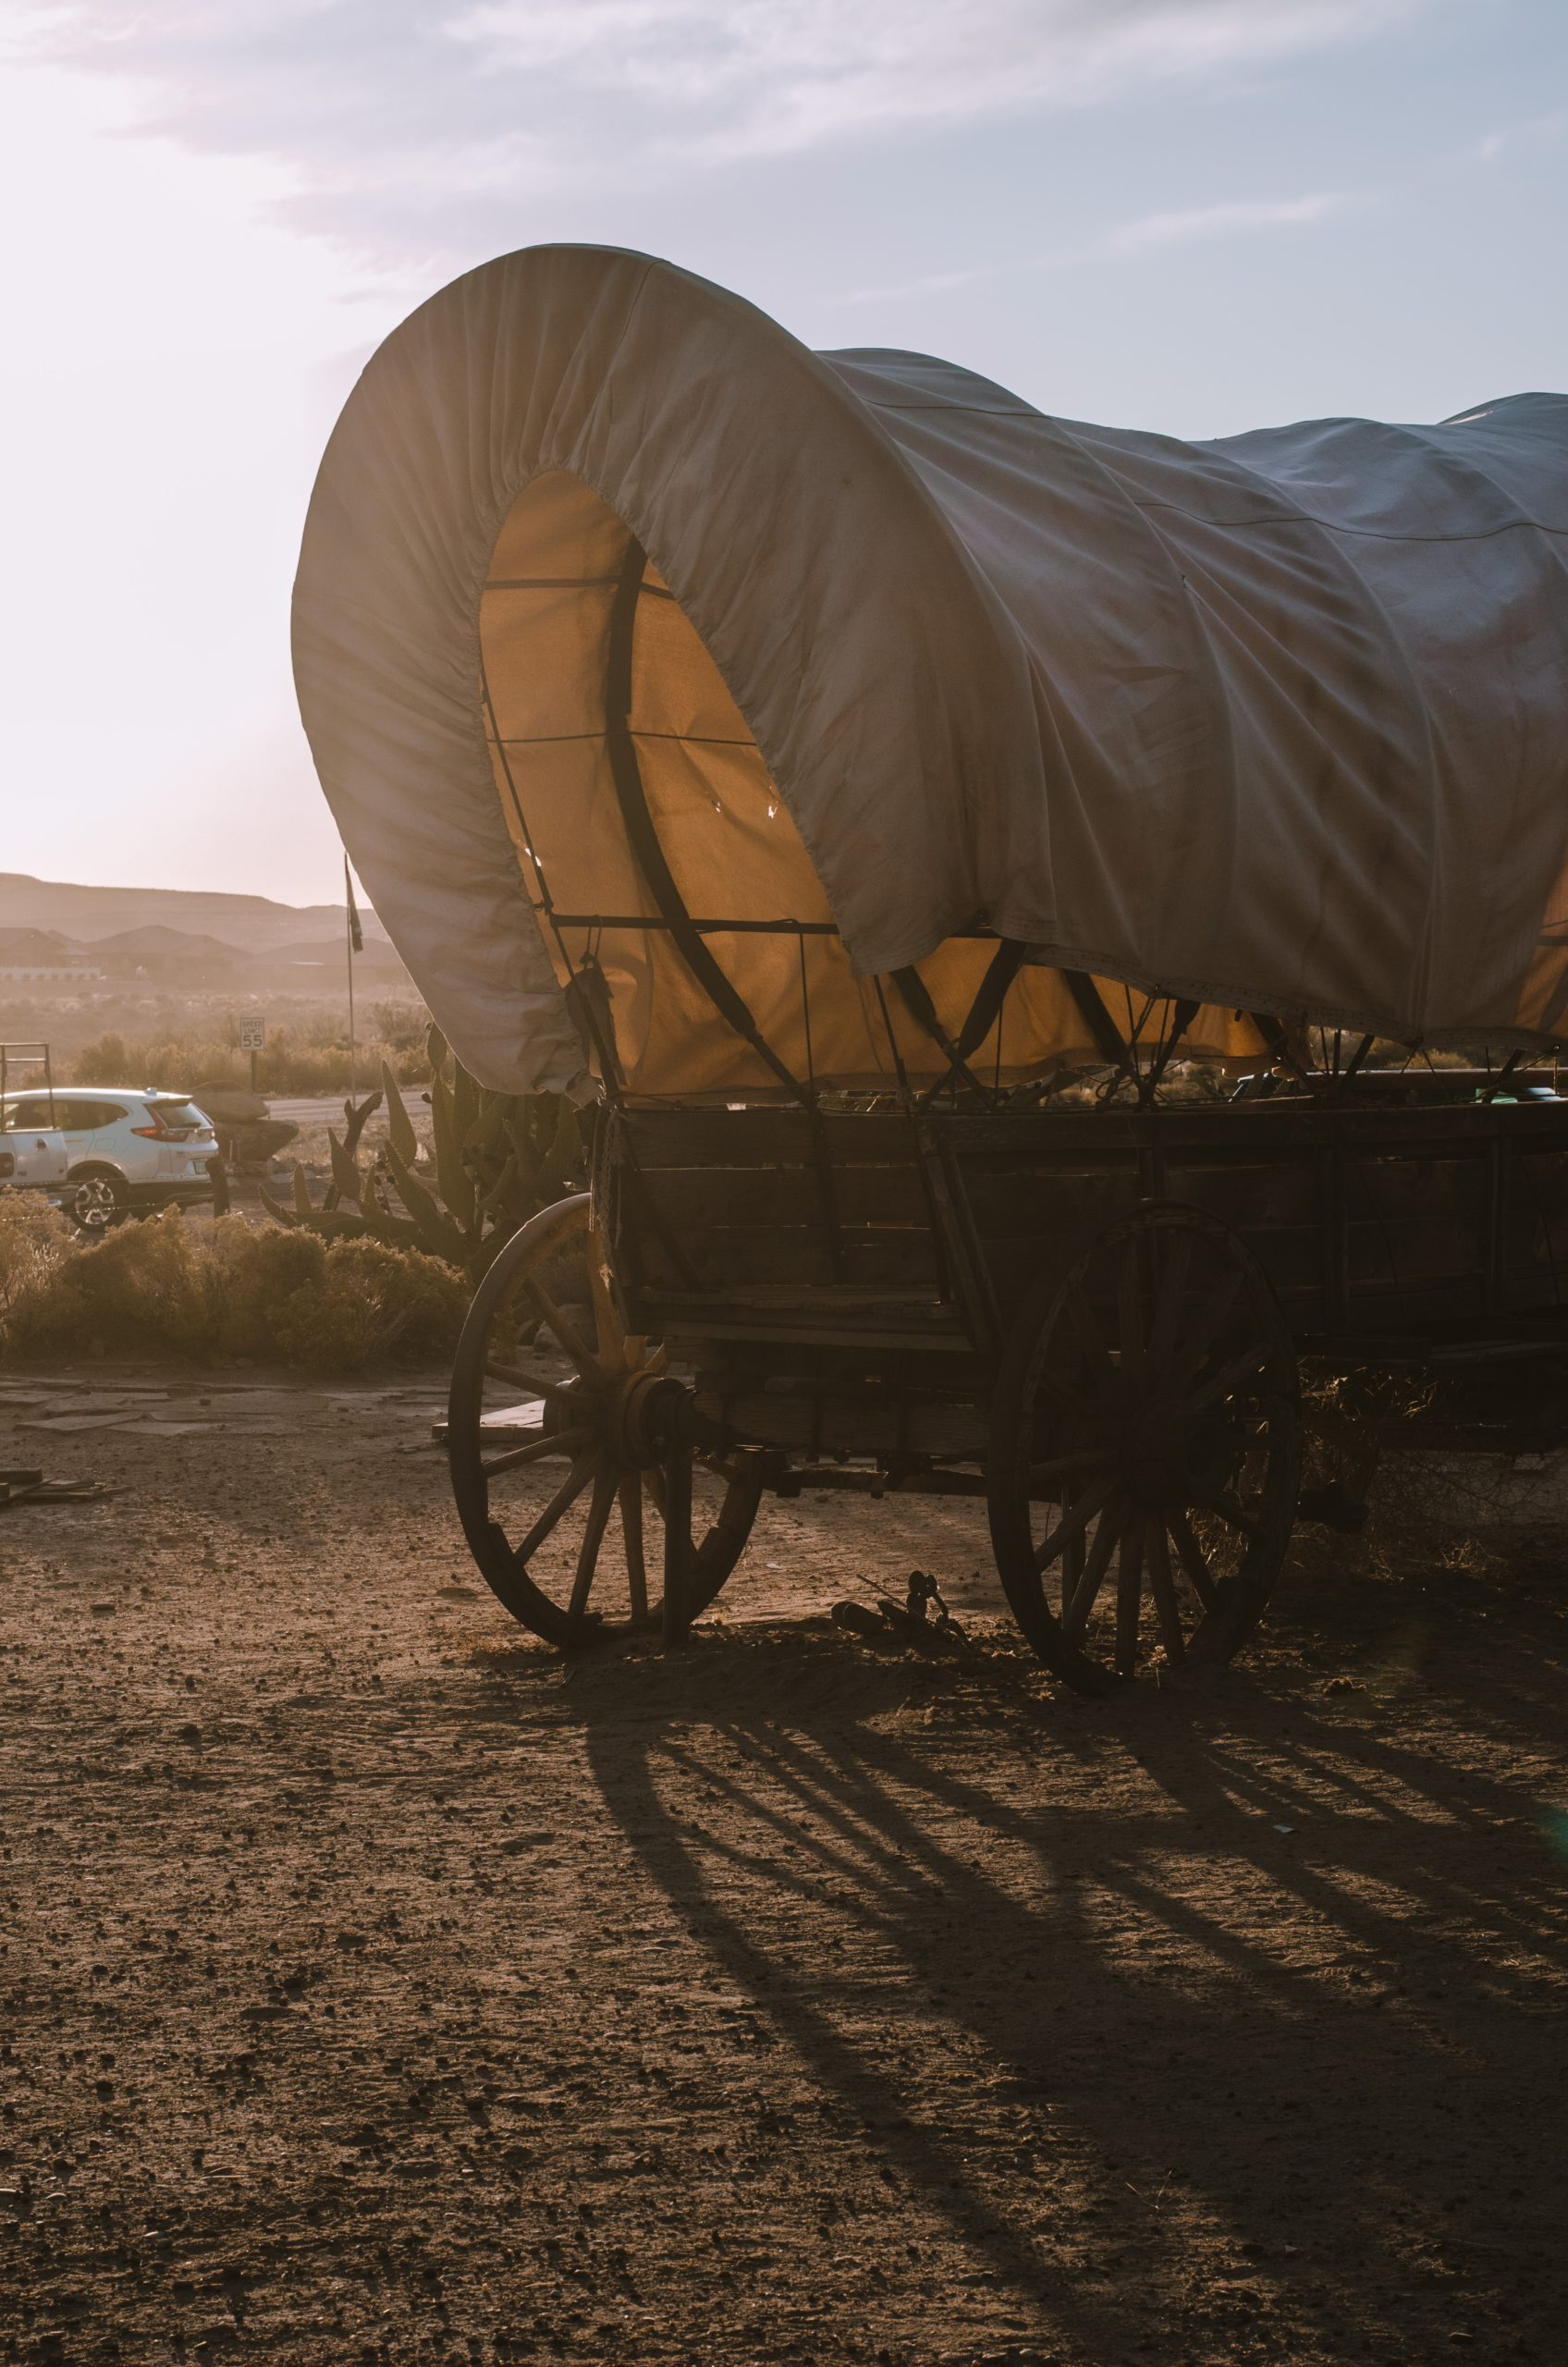 Sunlight streaming through a chuck-wagon